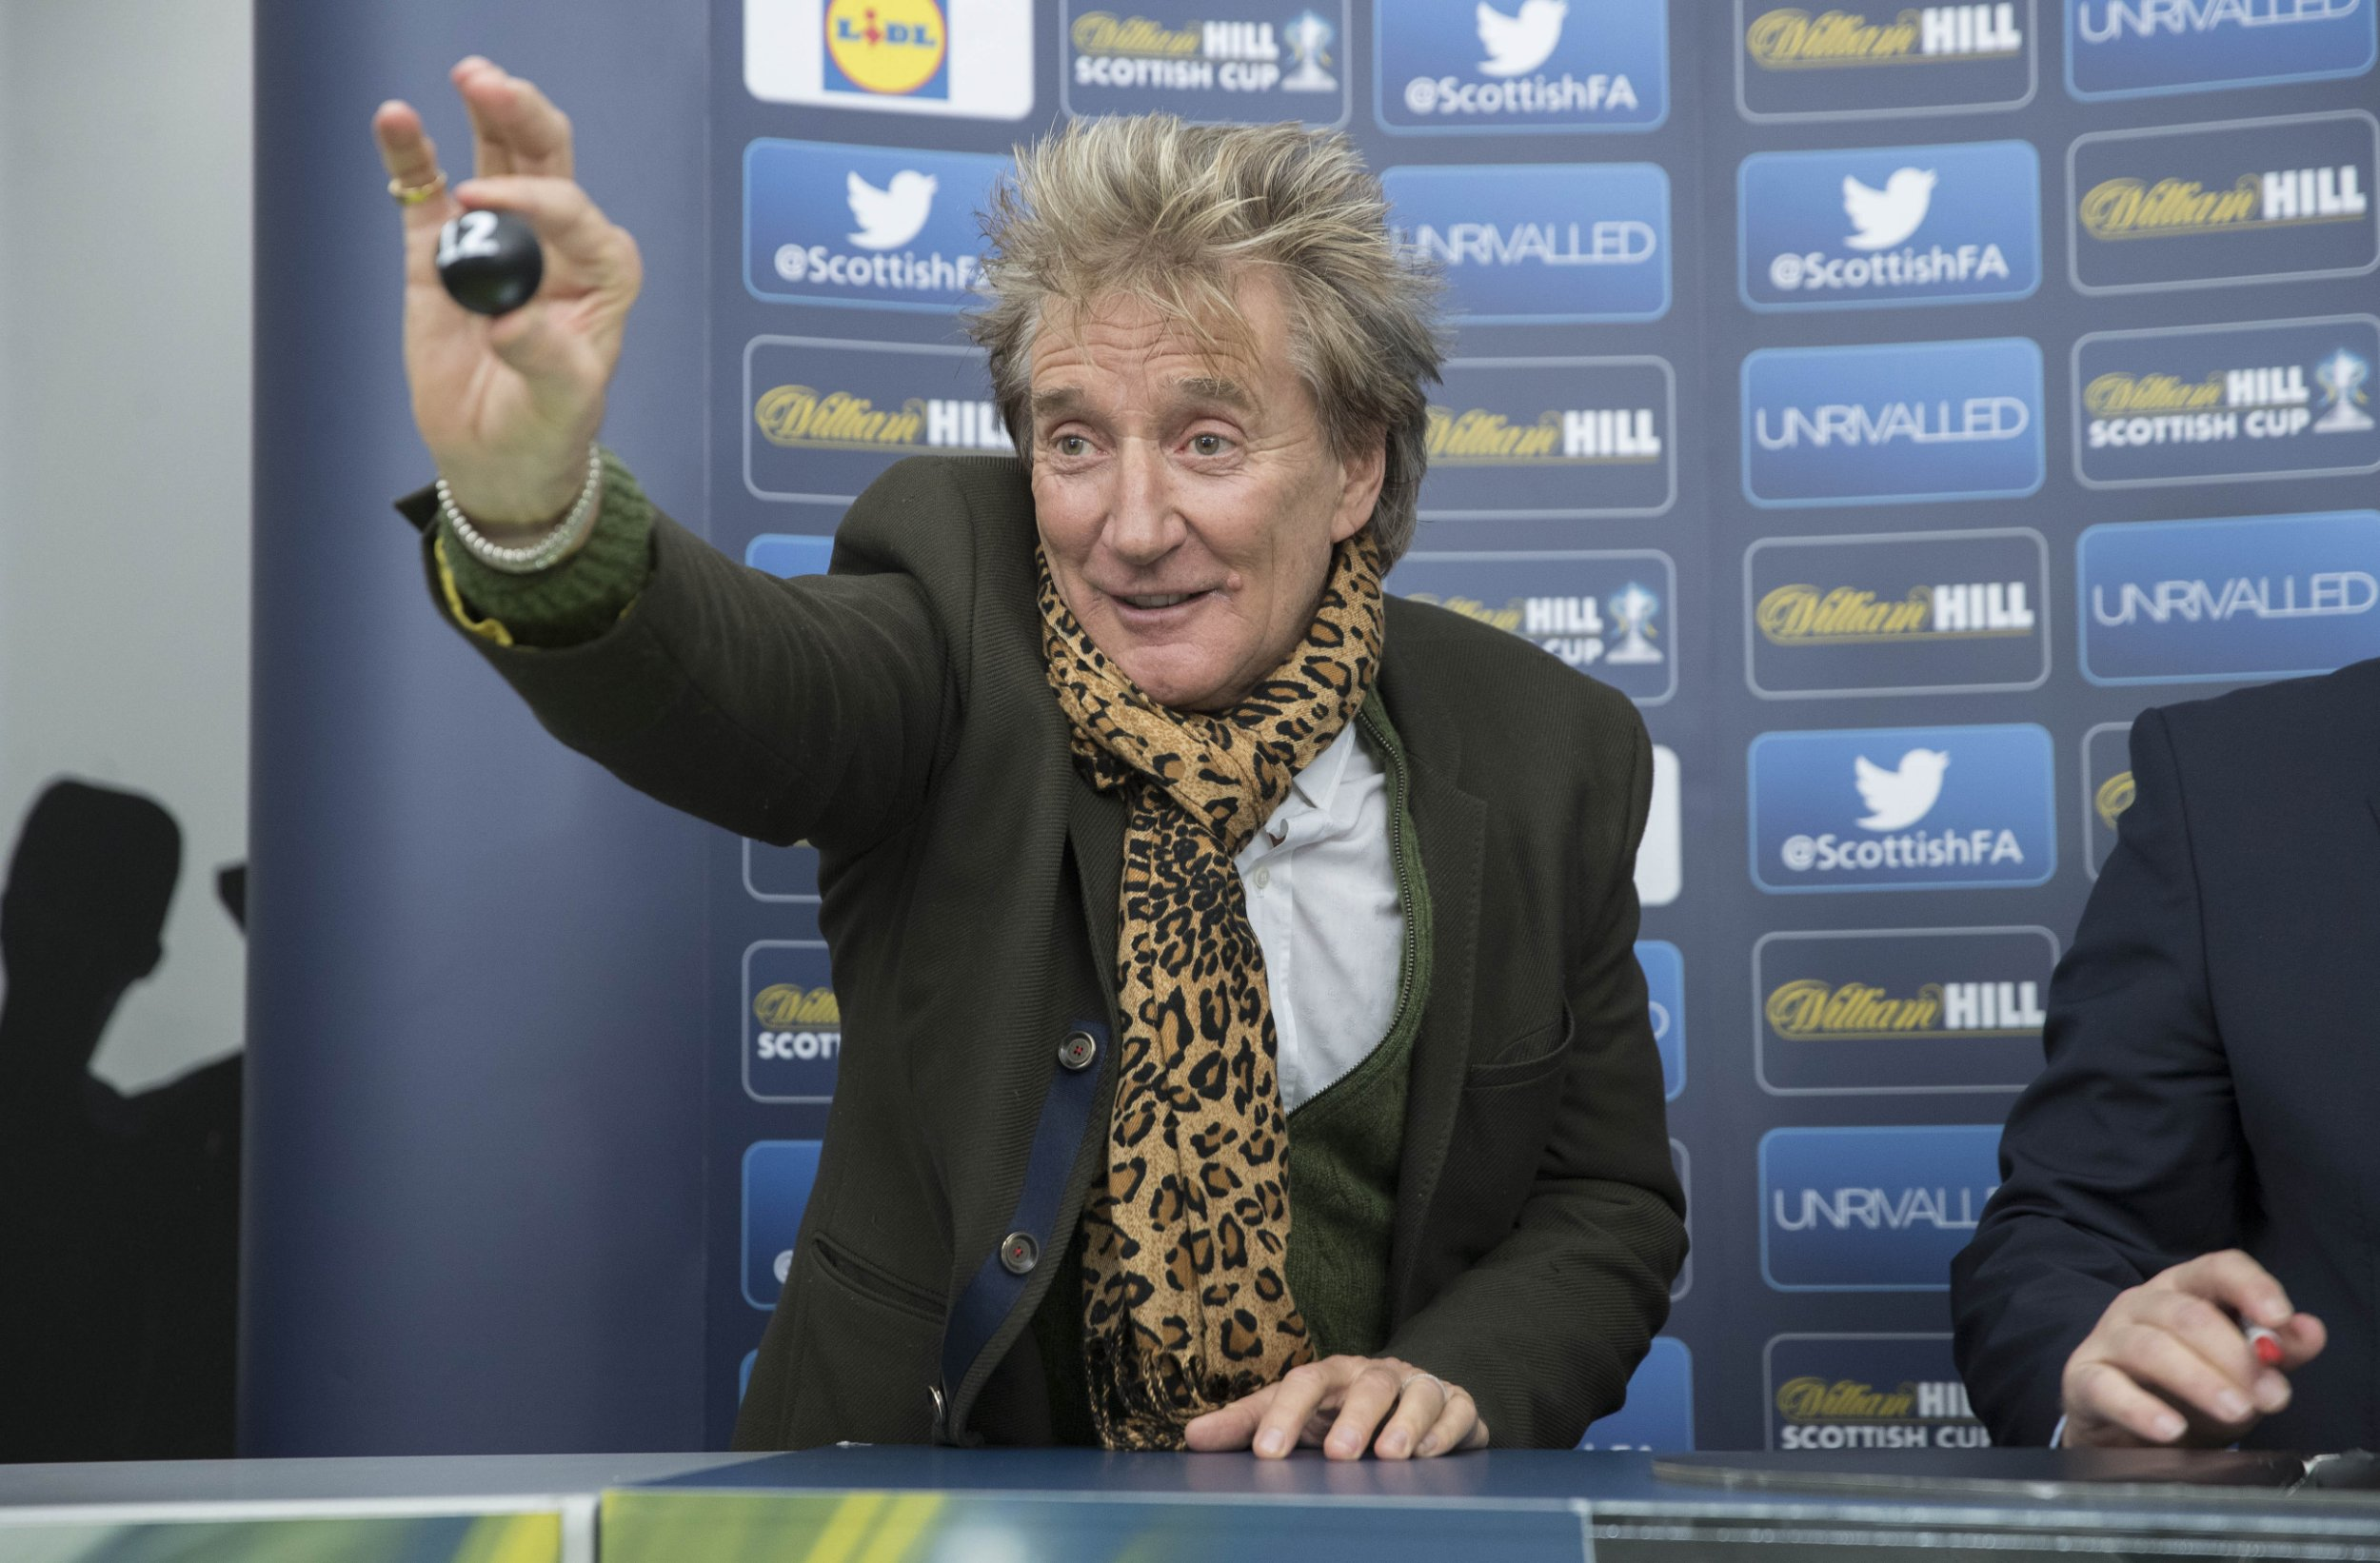 'I am flailing': Rod Stewart's antics at Scottish Cup Draw already a 'highlight of 2017'